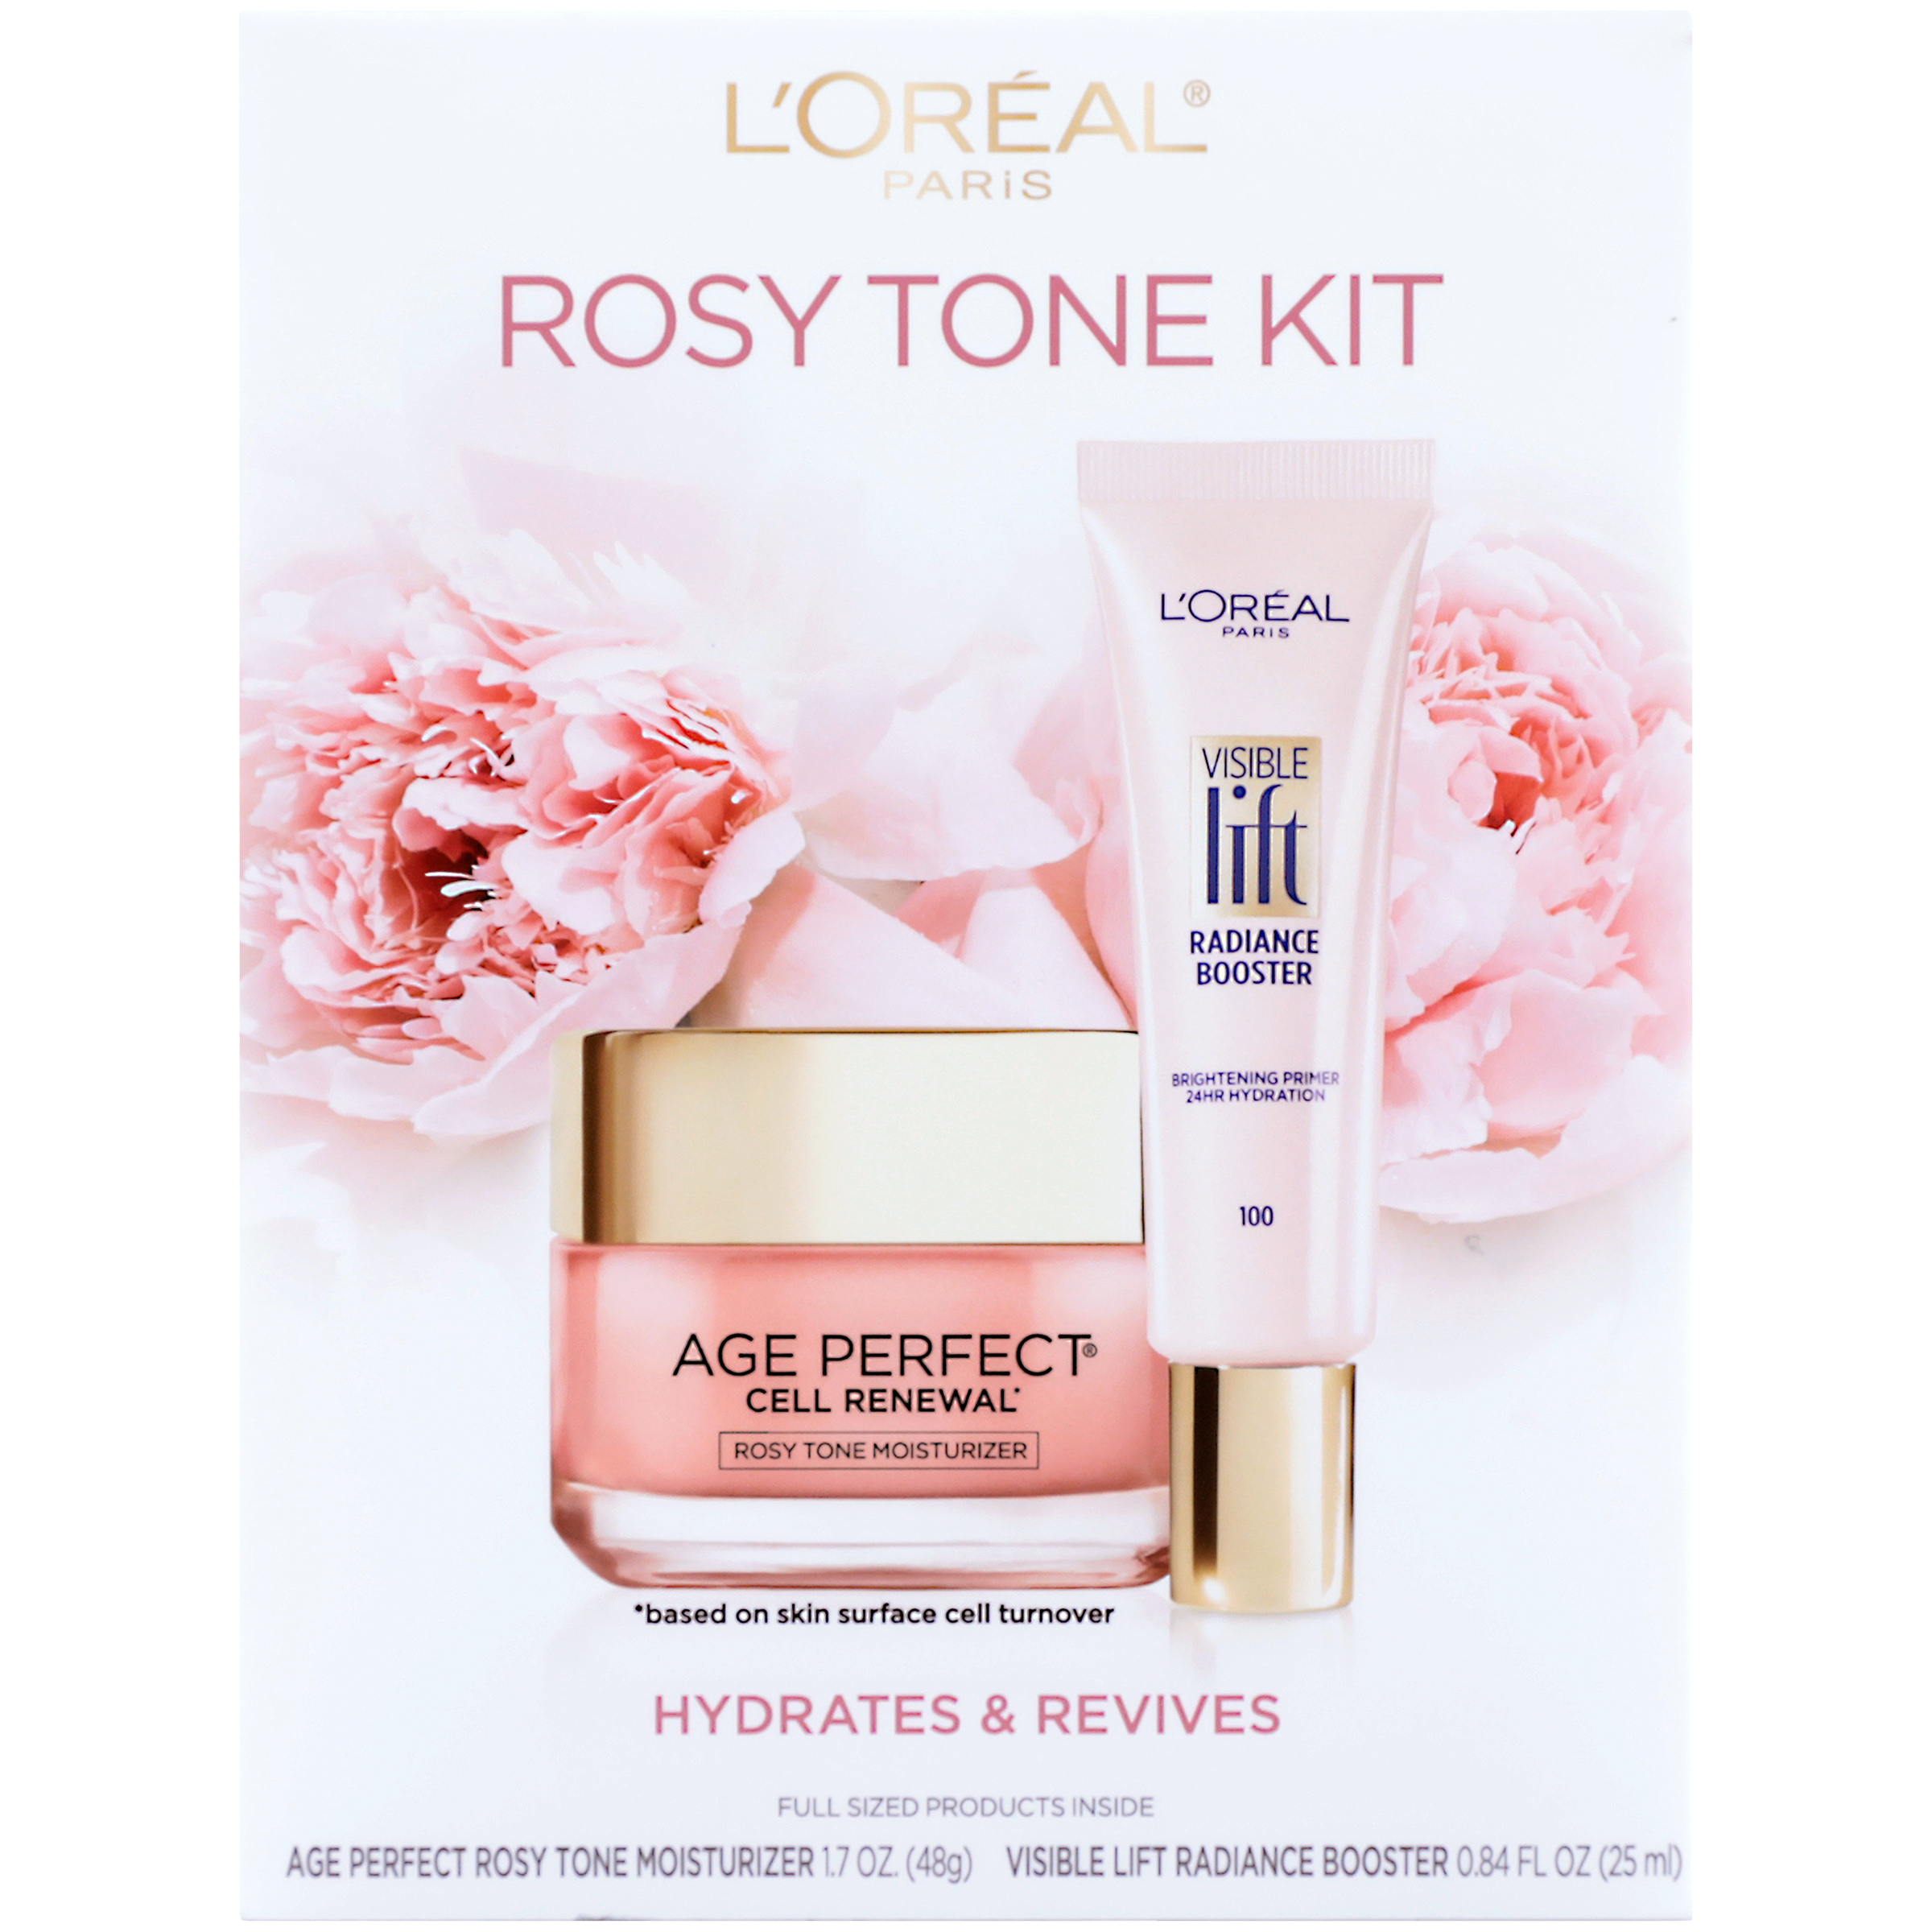 L'Oreal Paris Skincare Kit with Rosy Tone Moisturizer and Visible Lift